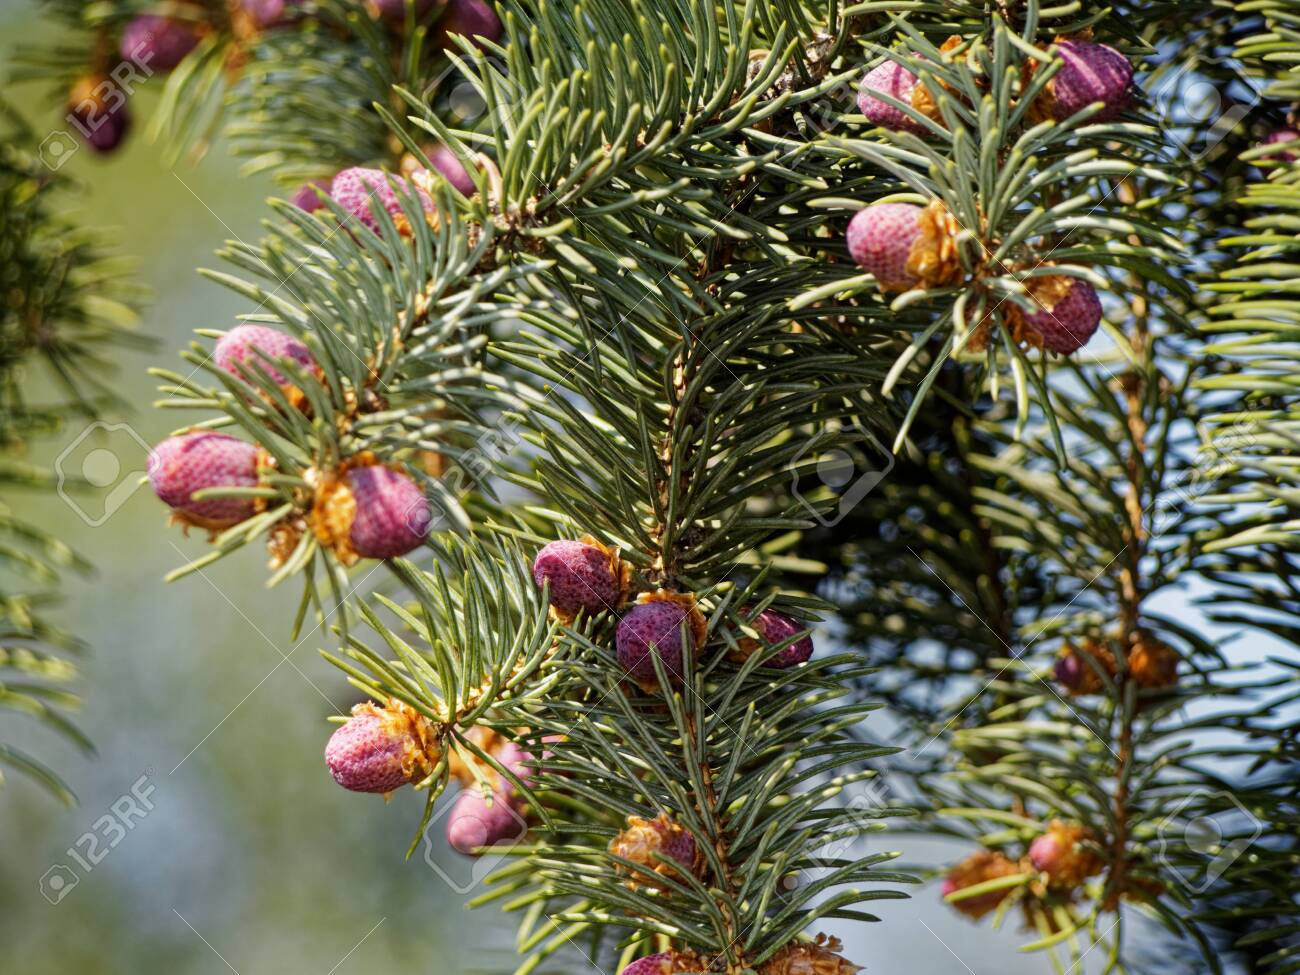 Just born small cones on the branches of a coniferous tree. - 137117222